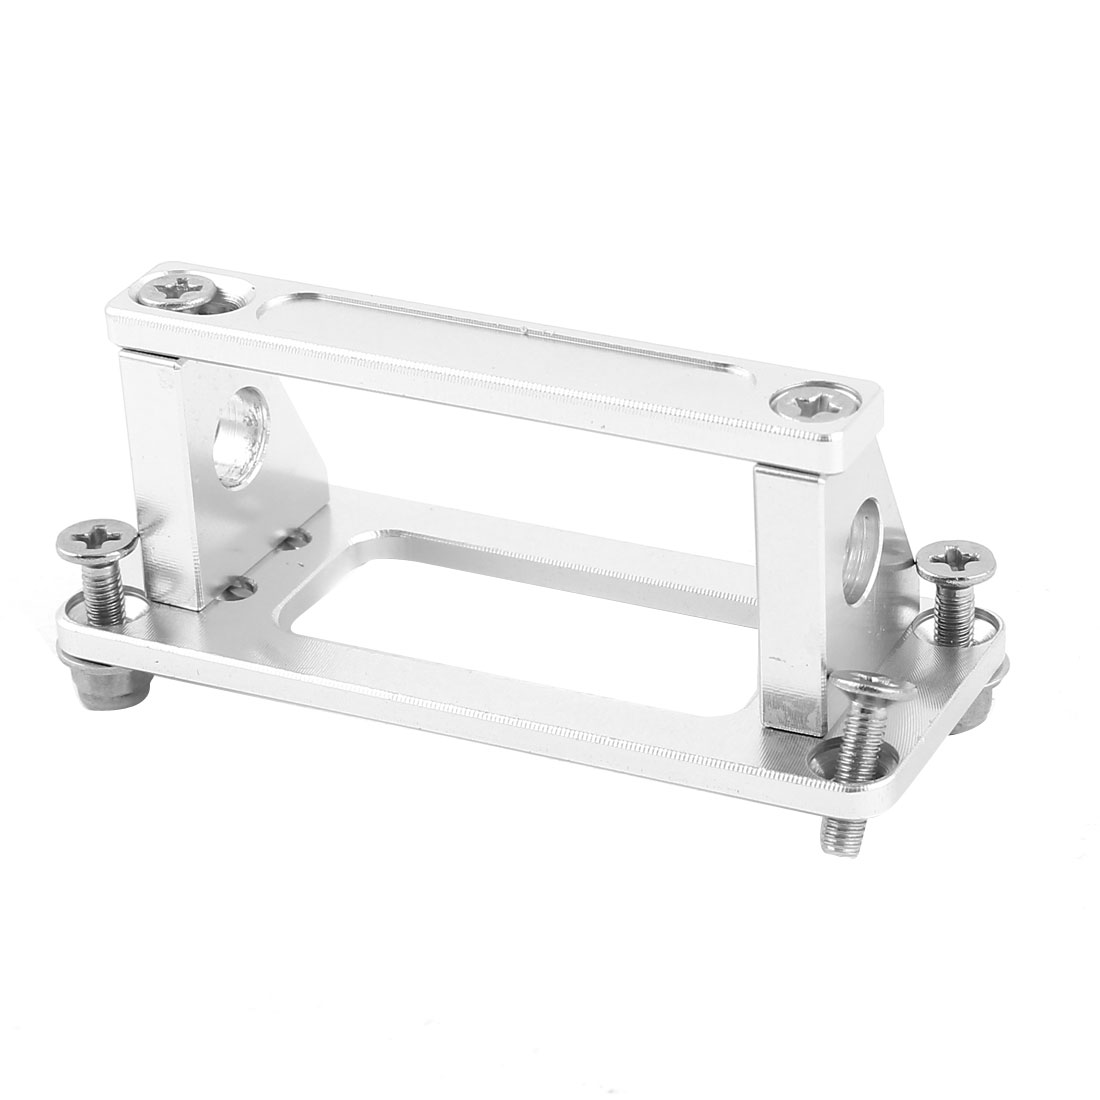 Alloy Aluminum Standard Servo Tray Stand Mount Base for RC Boat Steering Engine